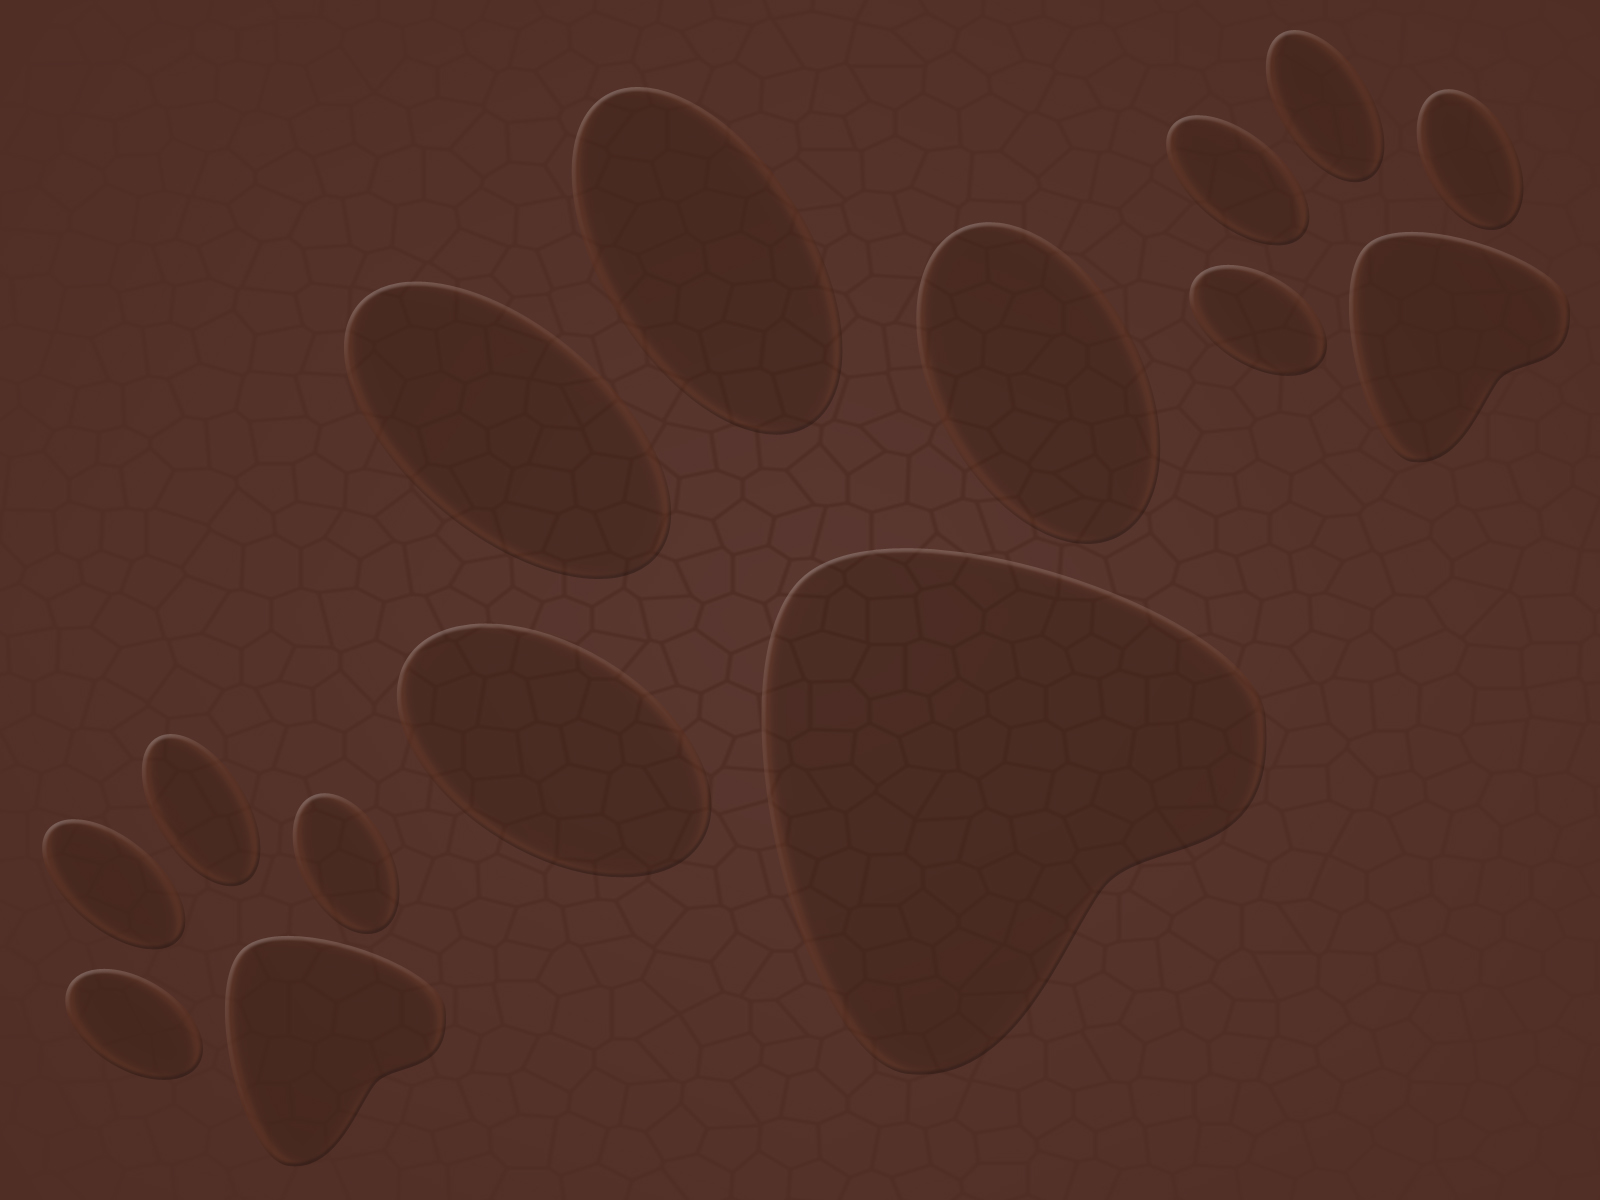 1 Paw Prints HD Wallpapers | Backgrounds - Wallpaper Abyss